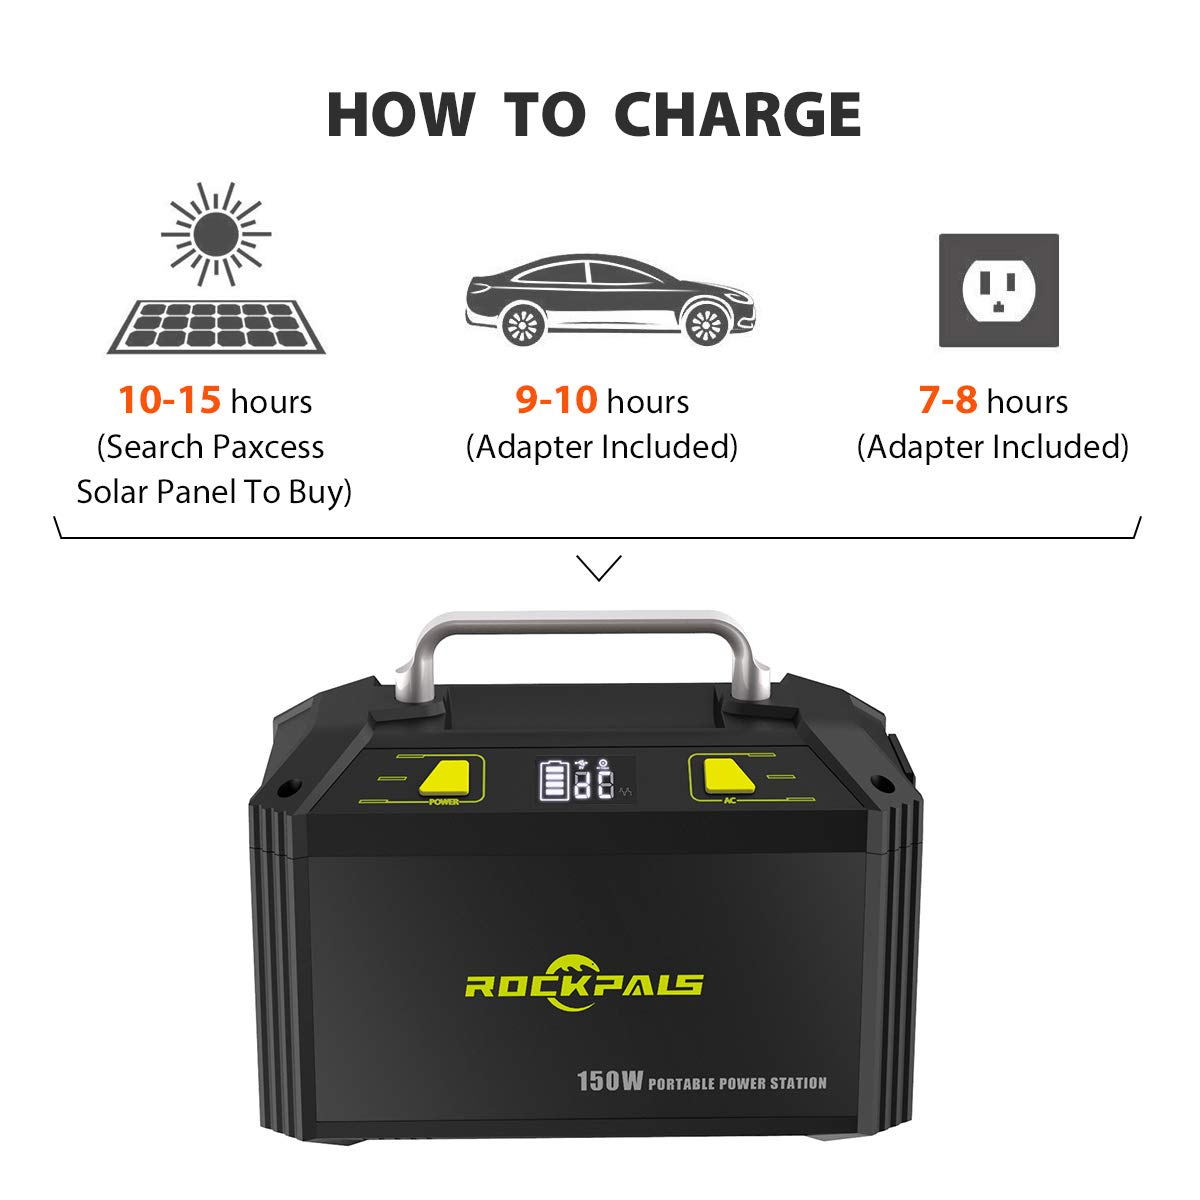 ROCKPALS 178Wh 48000mAh Portable Generator CPAP Battery Pack for Camping, 150W Solar Power Generator Power Station with 110V AC Outlet, 12V Car, USB Output for Home Emergency Backup by ROCKPALS (Image #5)